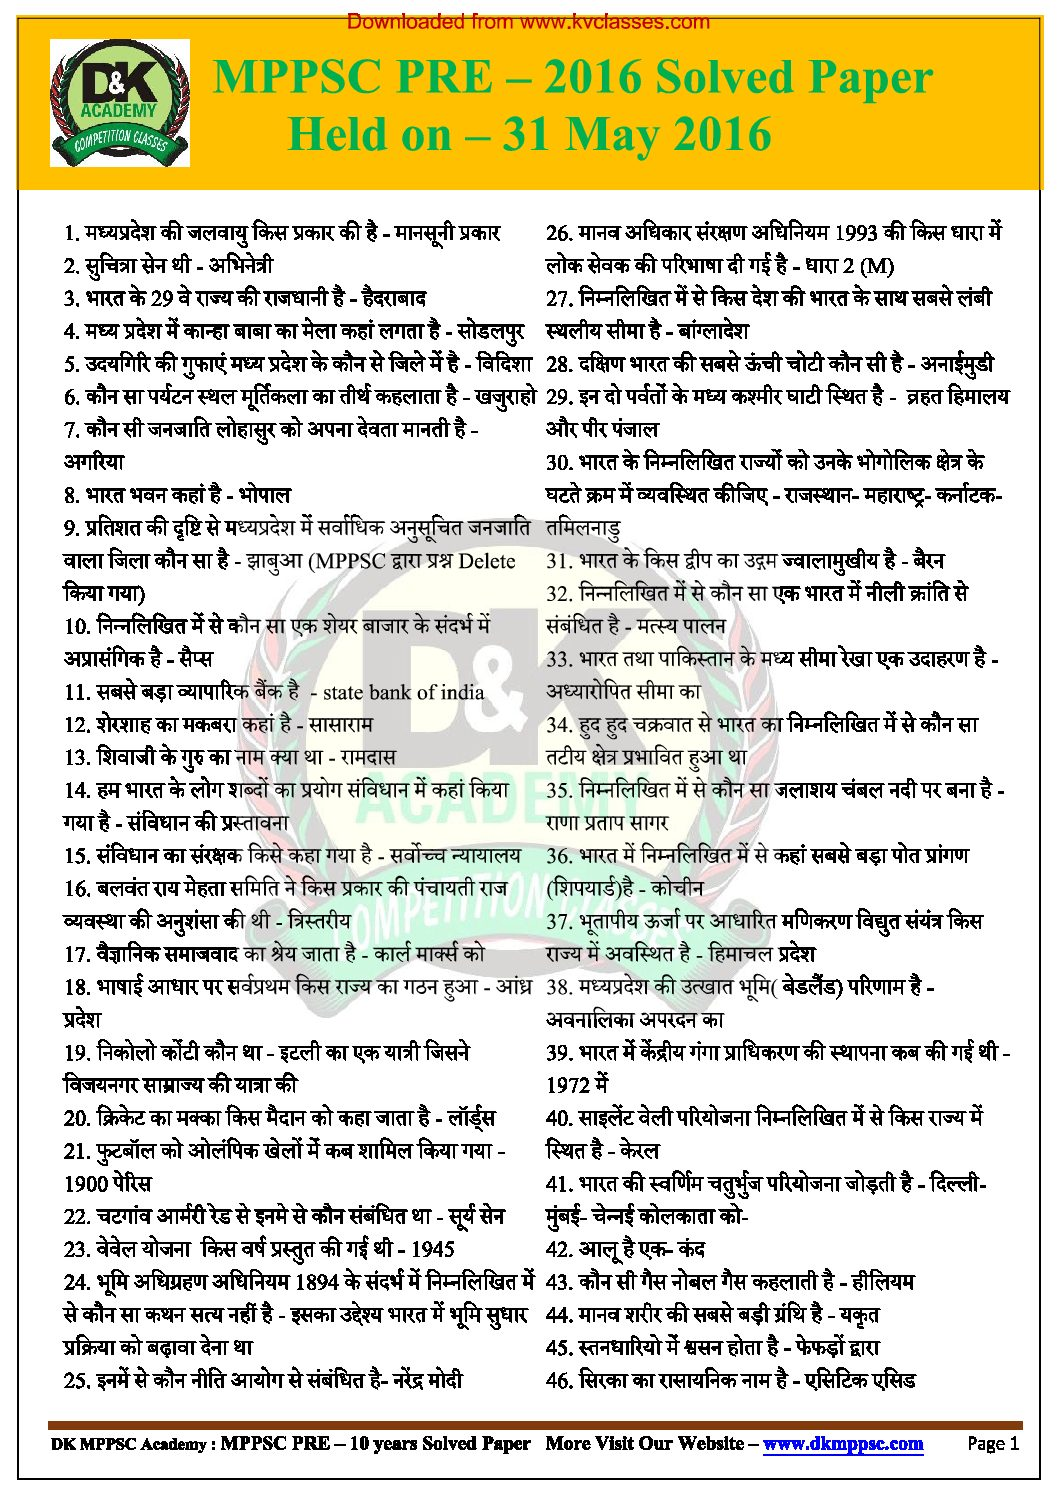 MPPSC 10 Years Past Papers (2003 to 2016) PDF Download – KV Classes